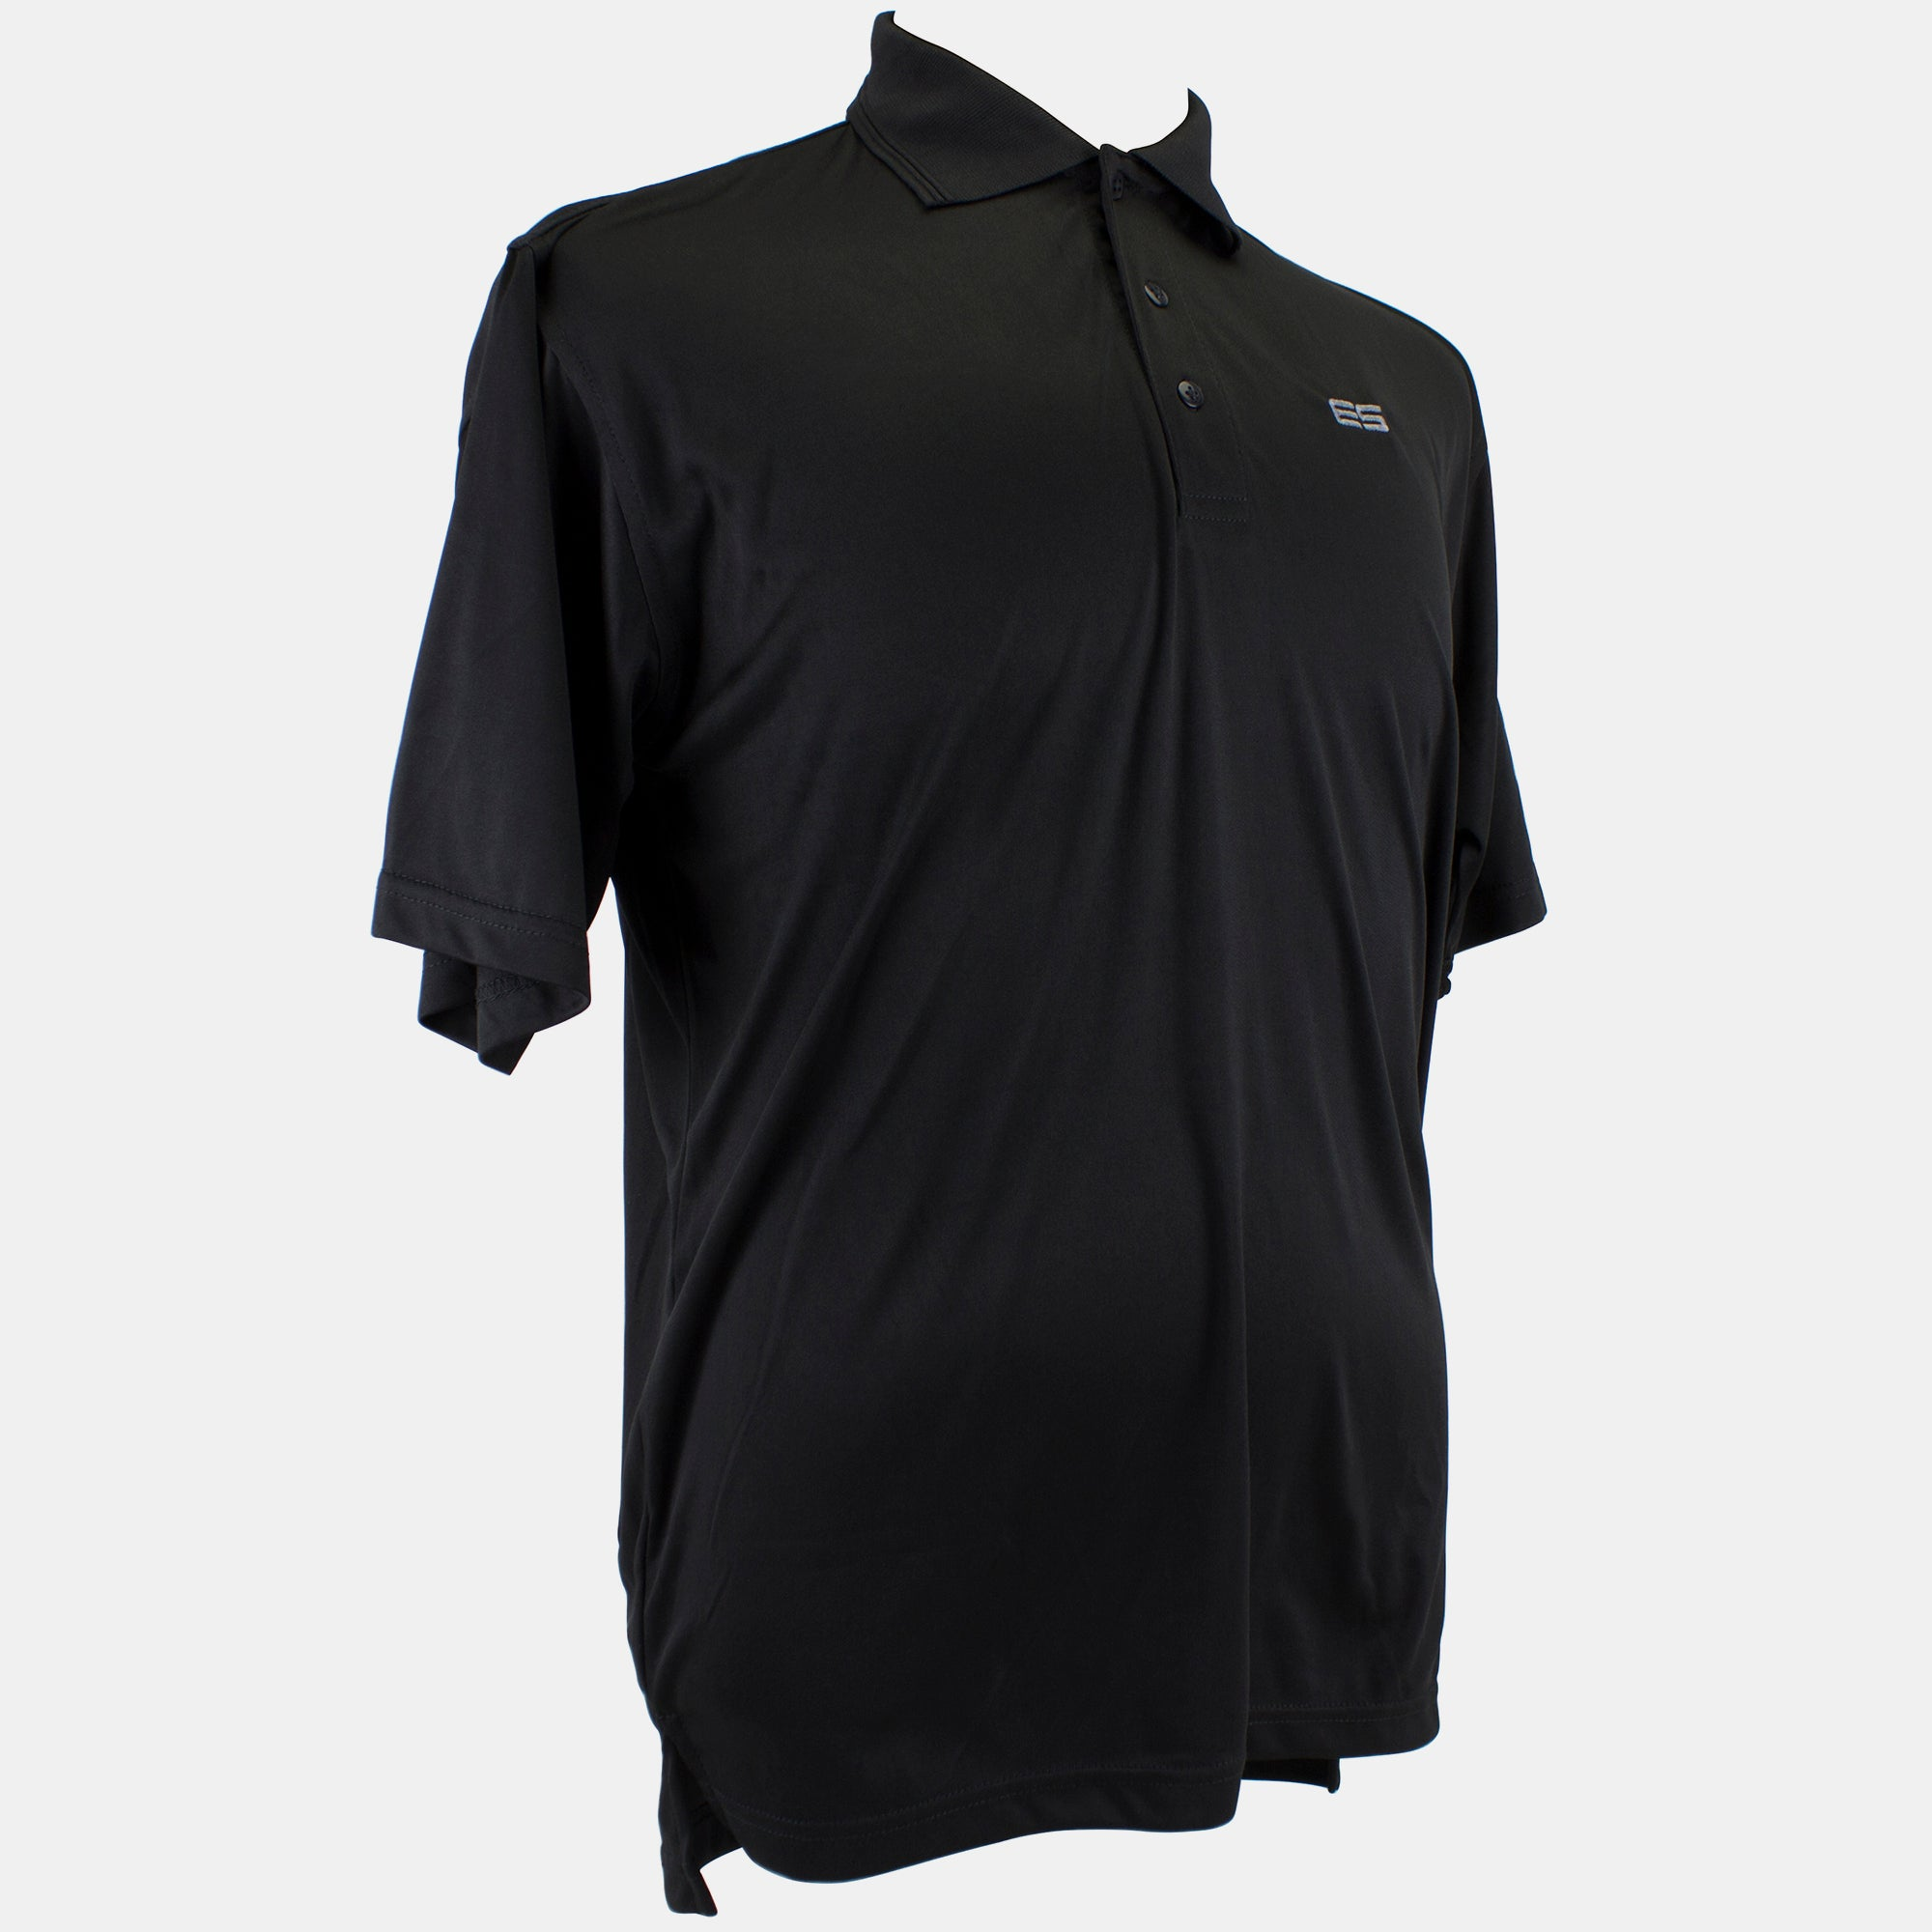 Eastsport Performance Polo